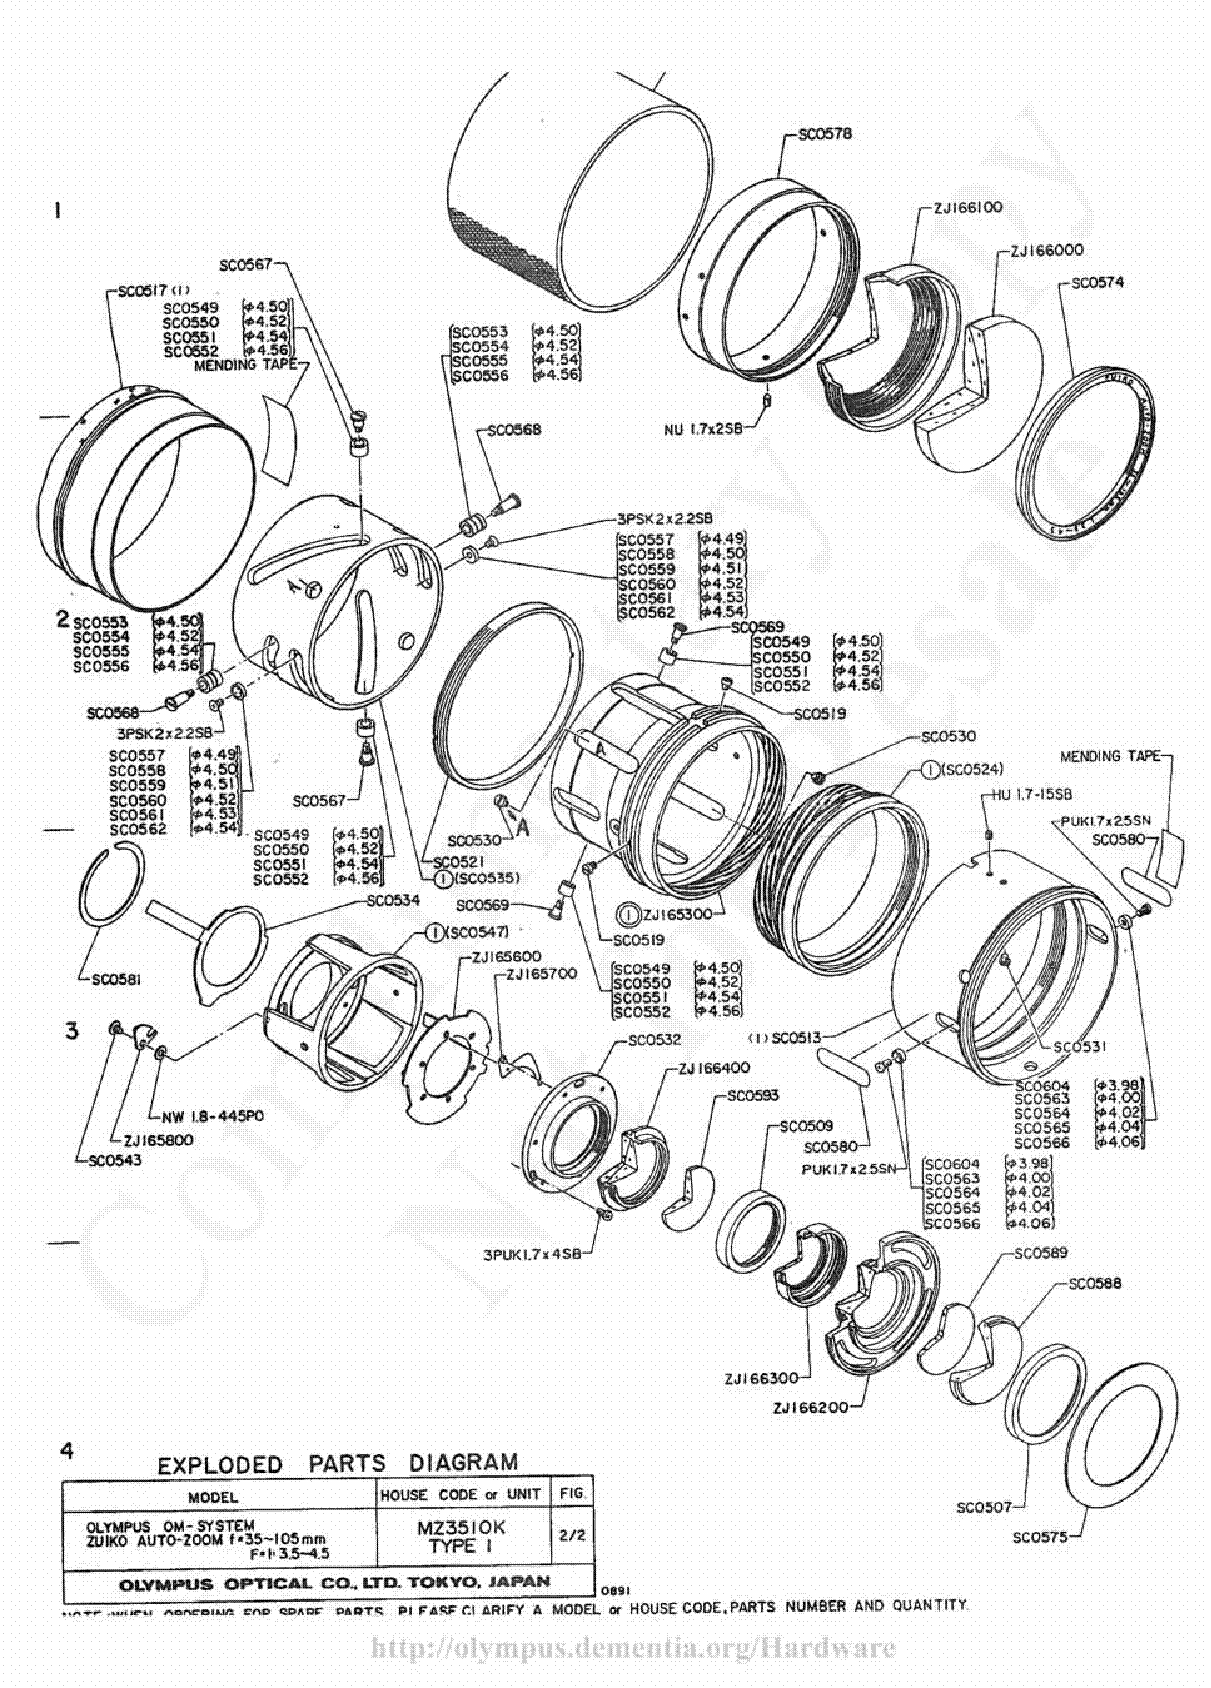 OLYMPUS 35-105MM F3.5-4.5 EXPLODED PARTS DIAGRAM Service